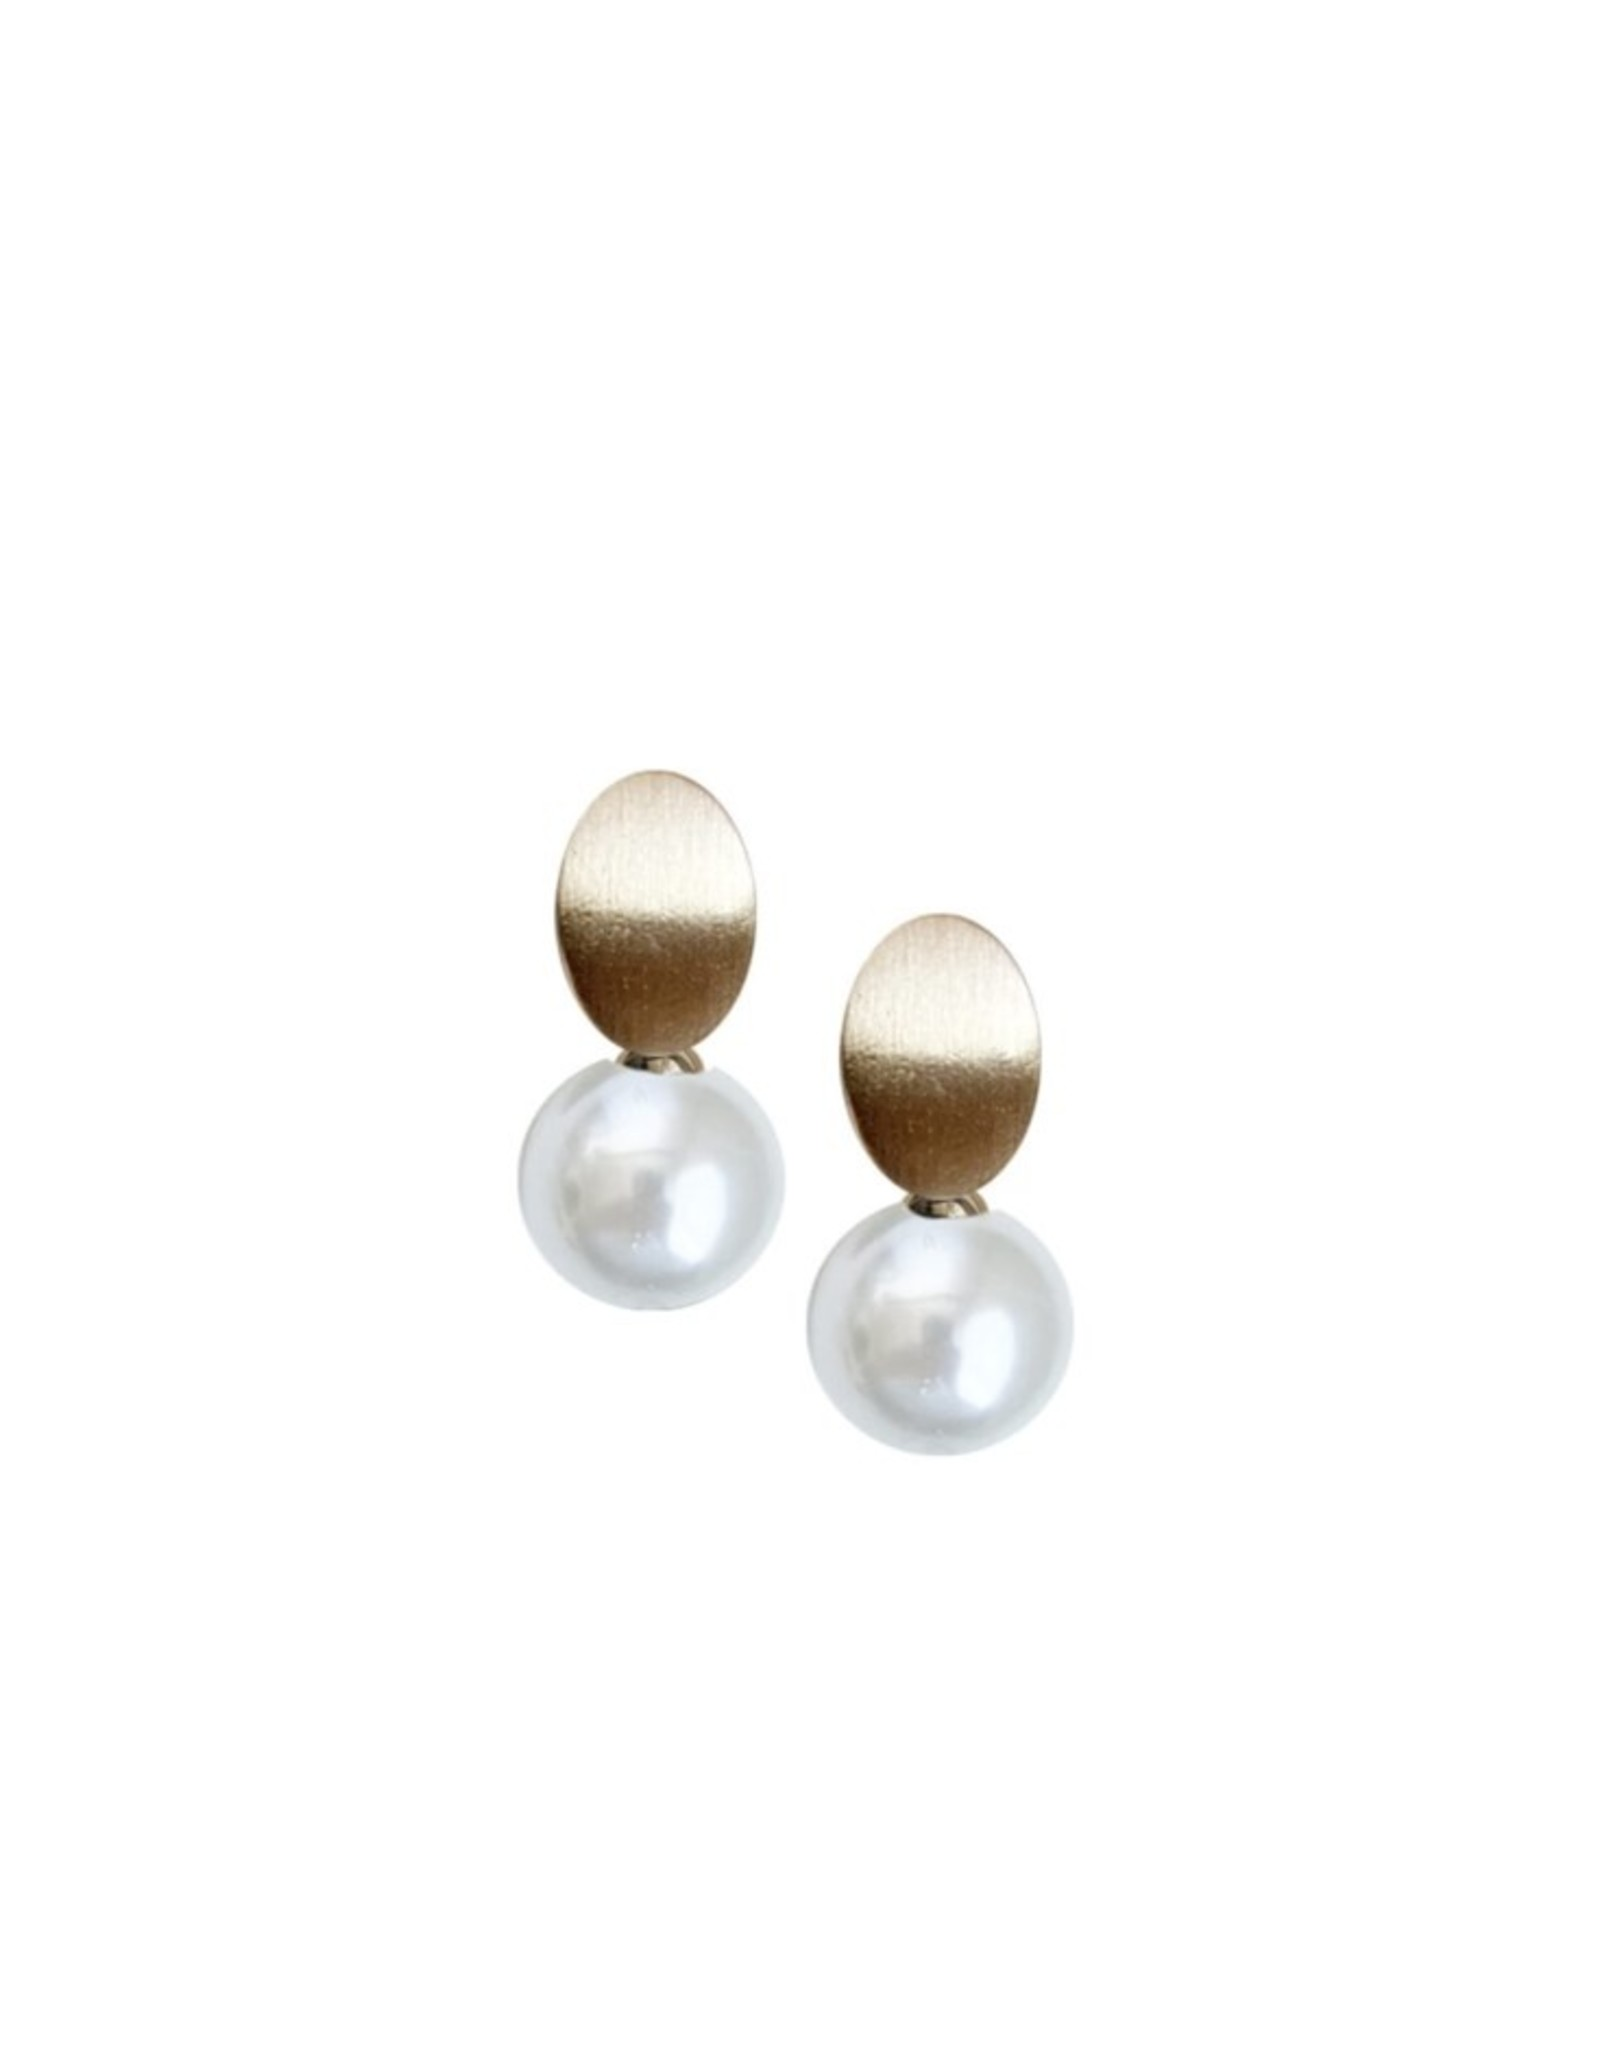 Brushed Metalllic Earrings with Pearl-gold